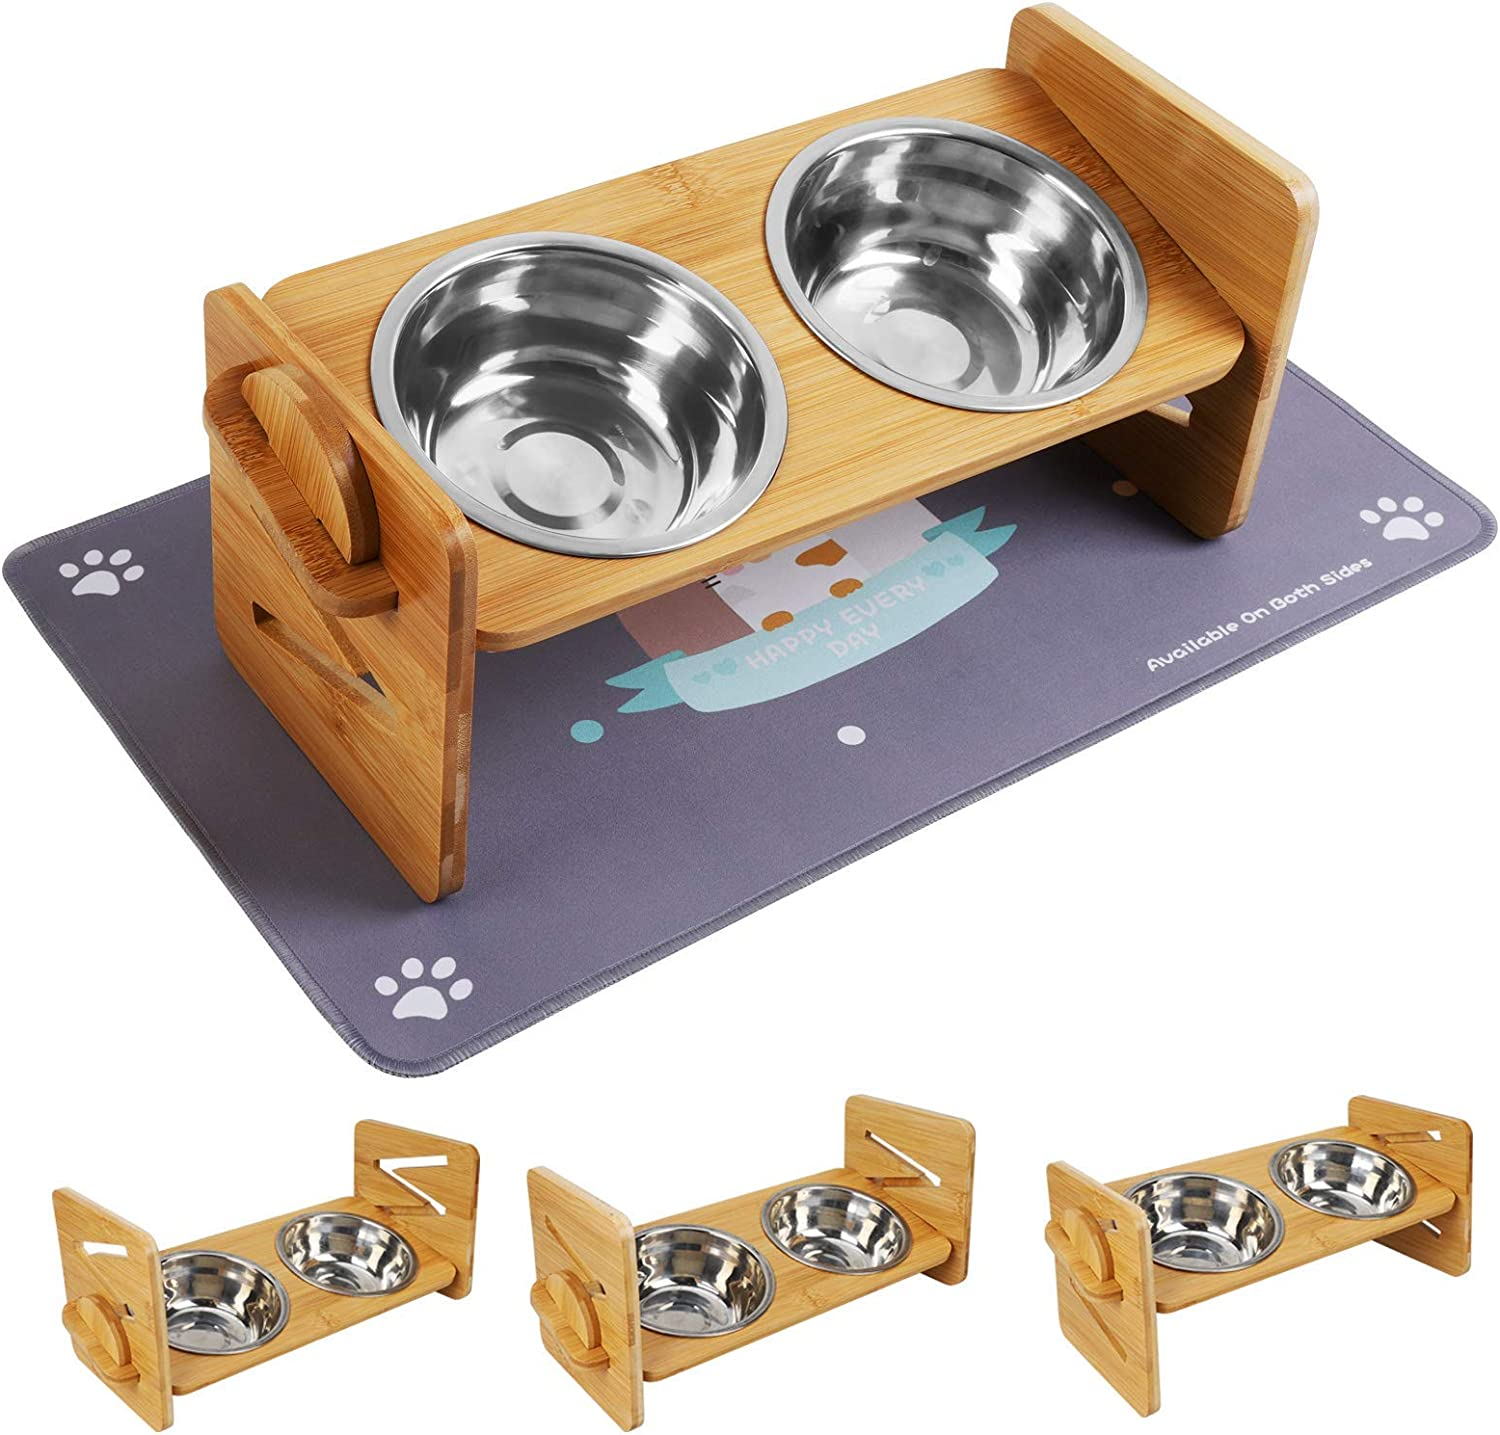 Upgrade Raised Pet Bowl for Cats and Small Dogs, Adjustable Elevated Dog Cat Food and Water Bowl Stand Feeder with 2 Stainless Steel Bowls and Cat Bowl Mat